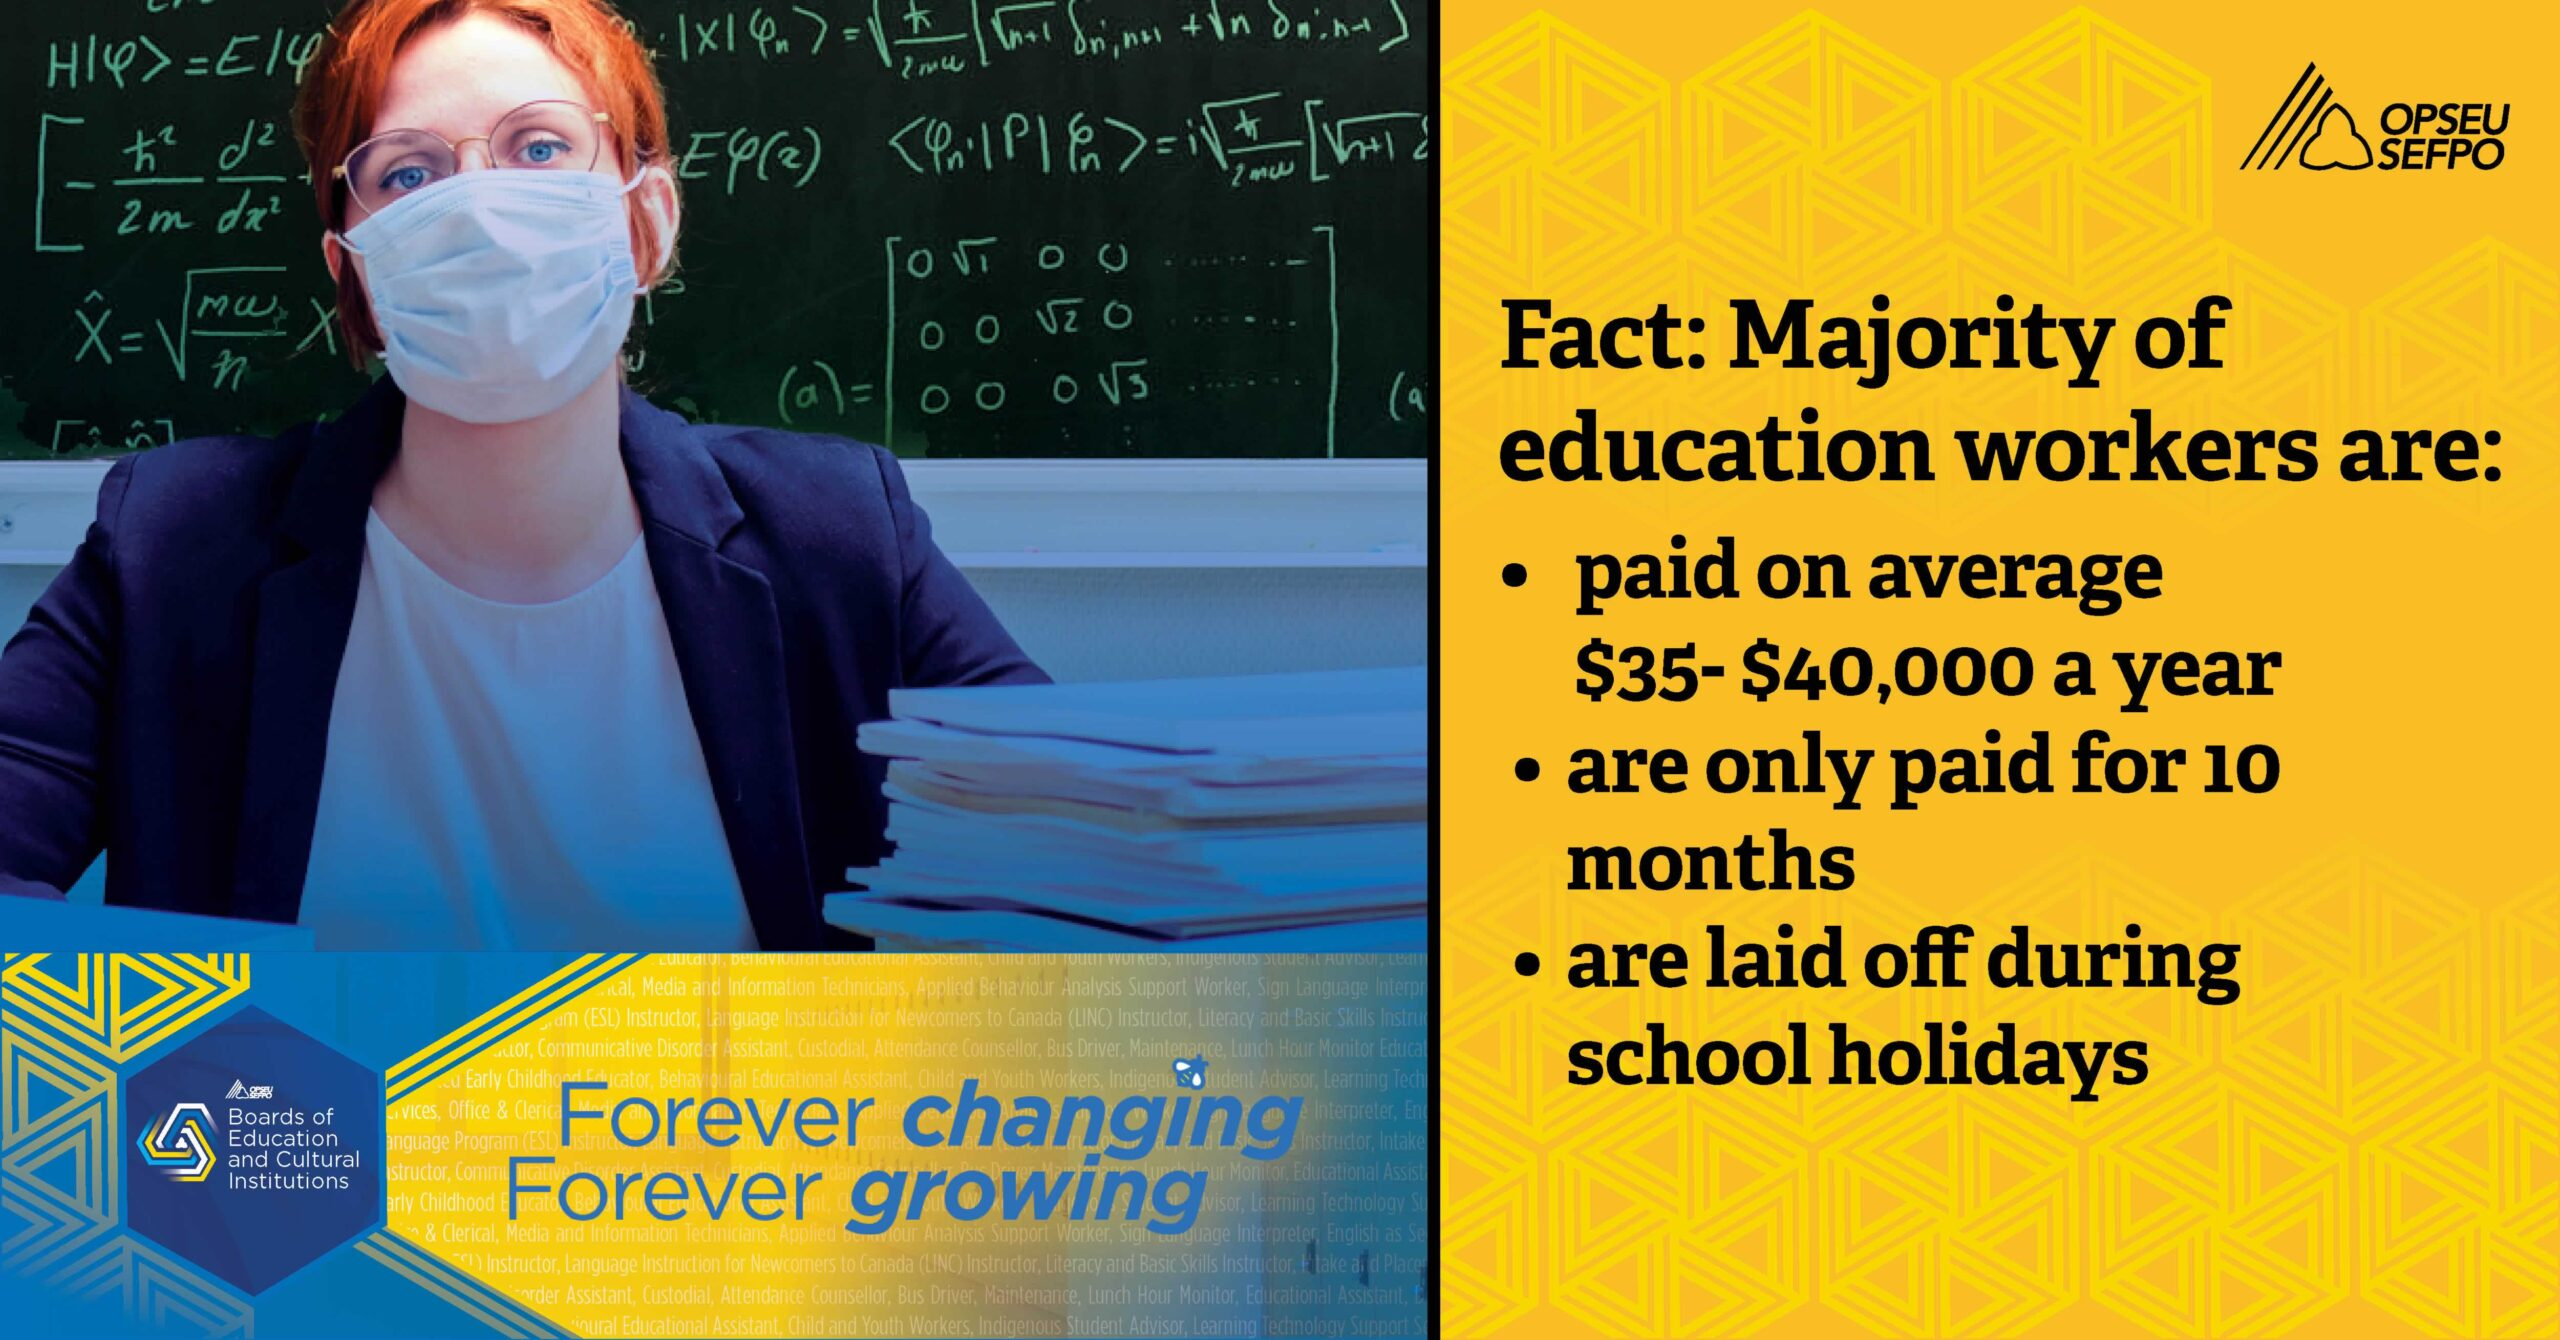 Fact: Majority of education workers are paid on average 35 to 40 thousands a year, are only paid for 10 months, and are laid off duringng school holidays.